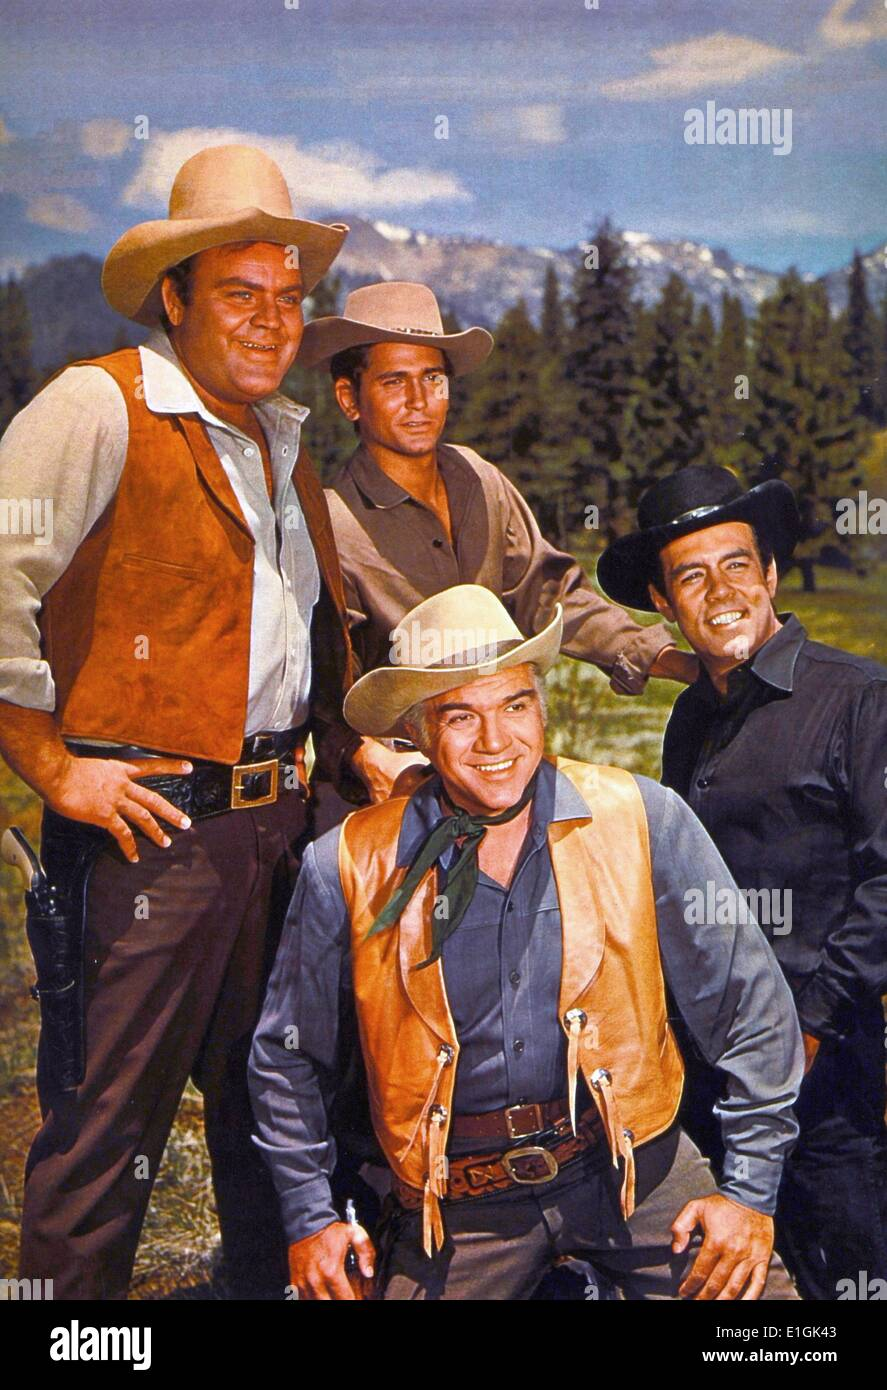 Publicity photo from the American TV series 'Bonanza'. Bonanza is an NBC television western series that ran from Stock Photo